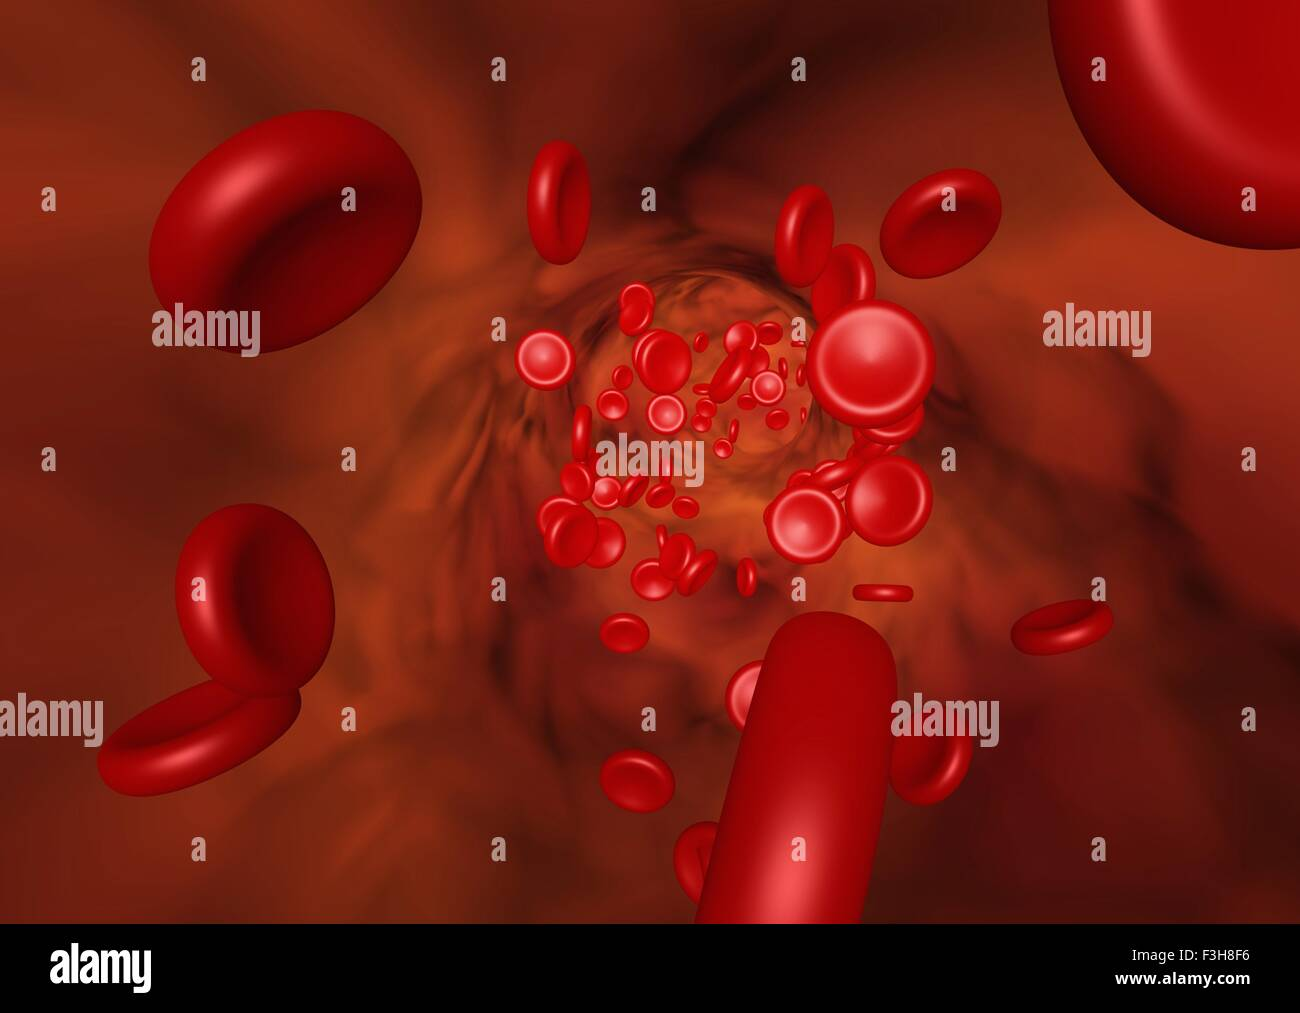 3D illustration showing the red blood cell flow in a vessel - Stock Image